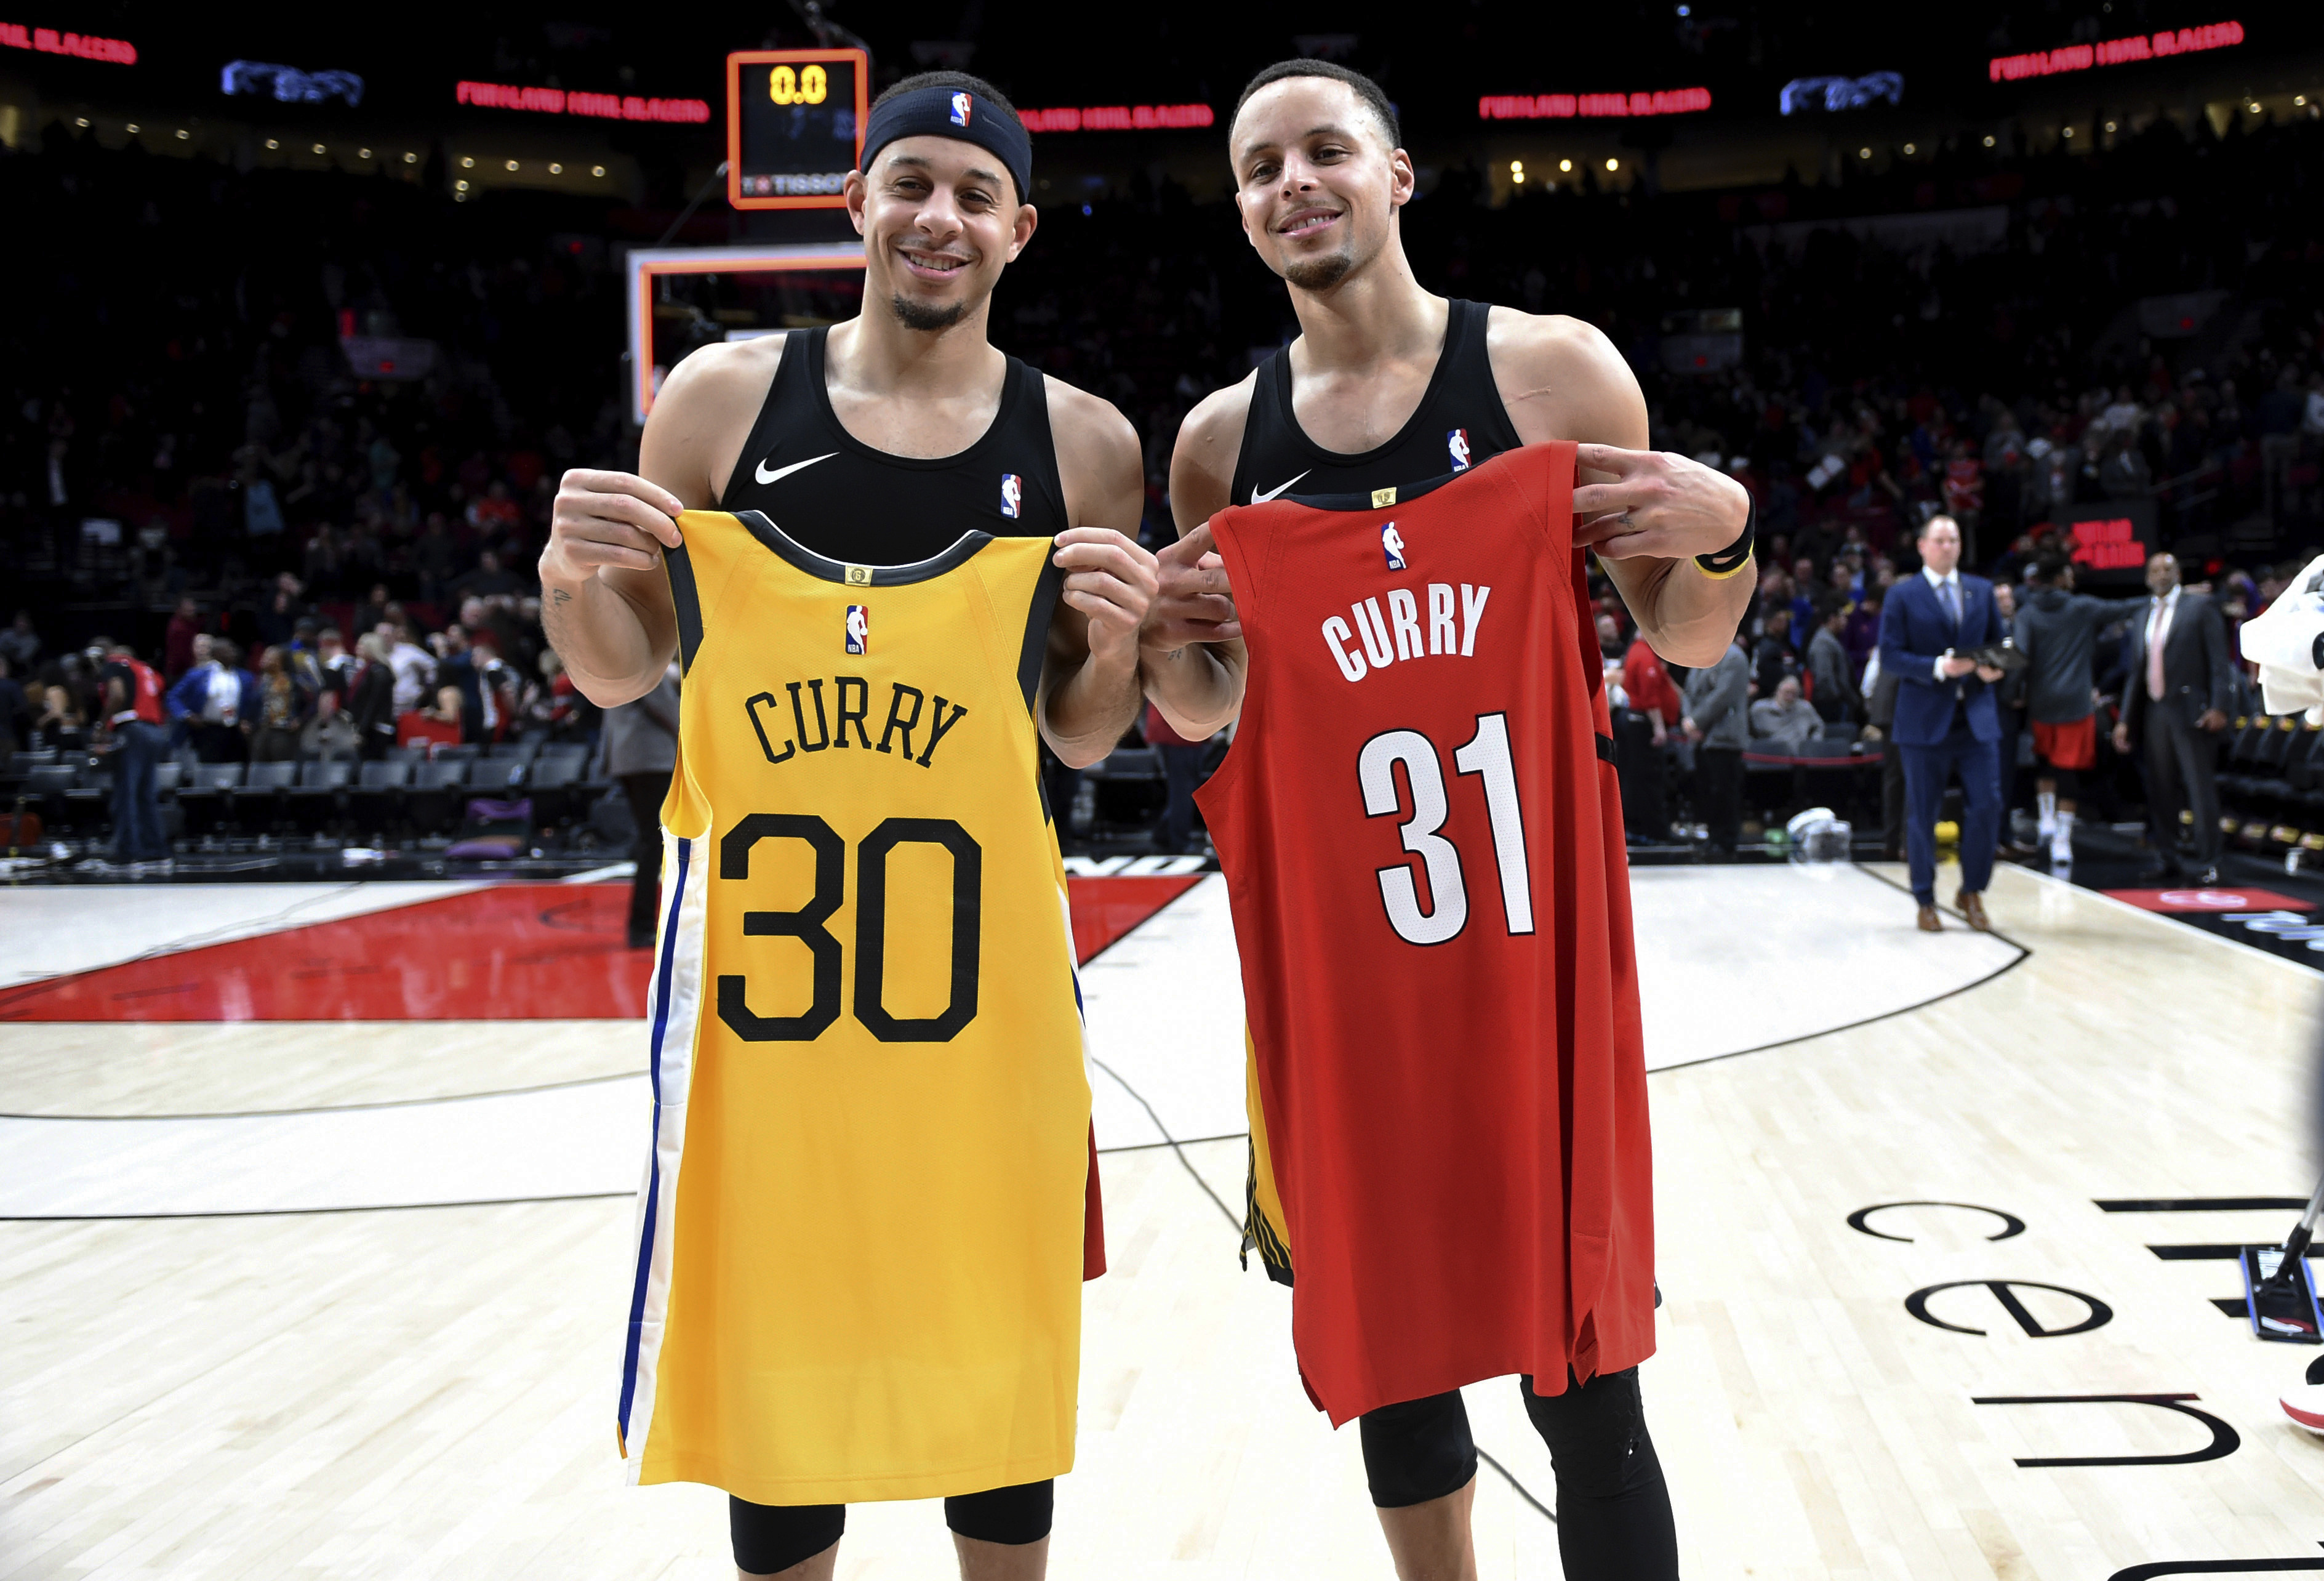 timeless design a642e d00ad Parents of Steph Curry, Seth Curry arrive for Game 1 wearing ...